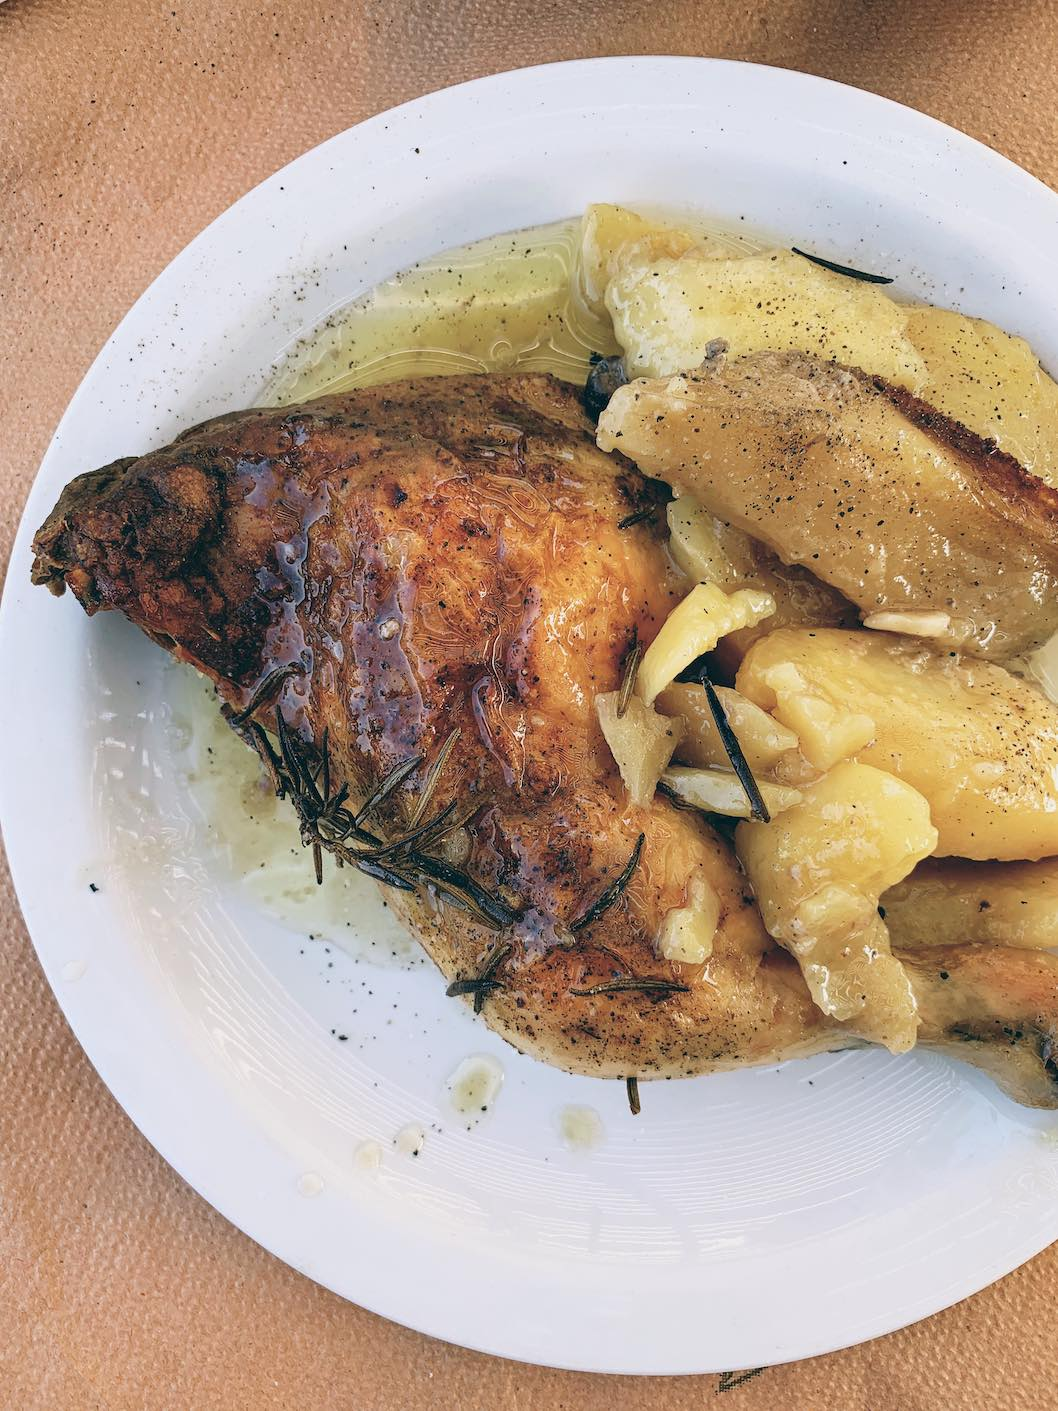 Rosemary chicken and potatoes baked in the wood-fired oven